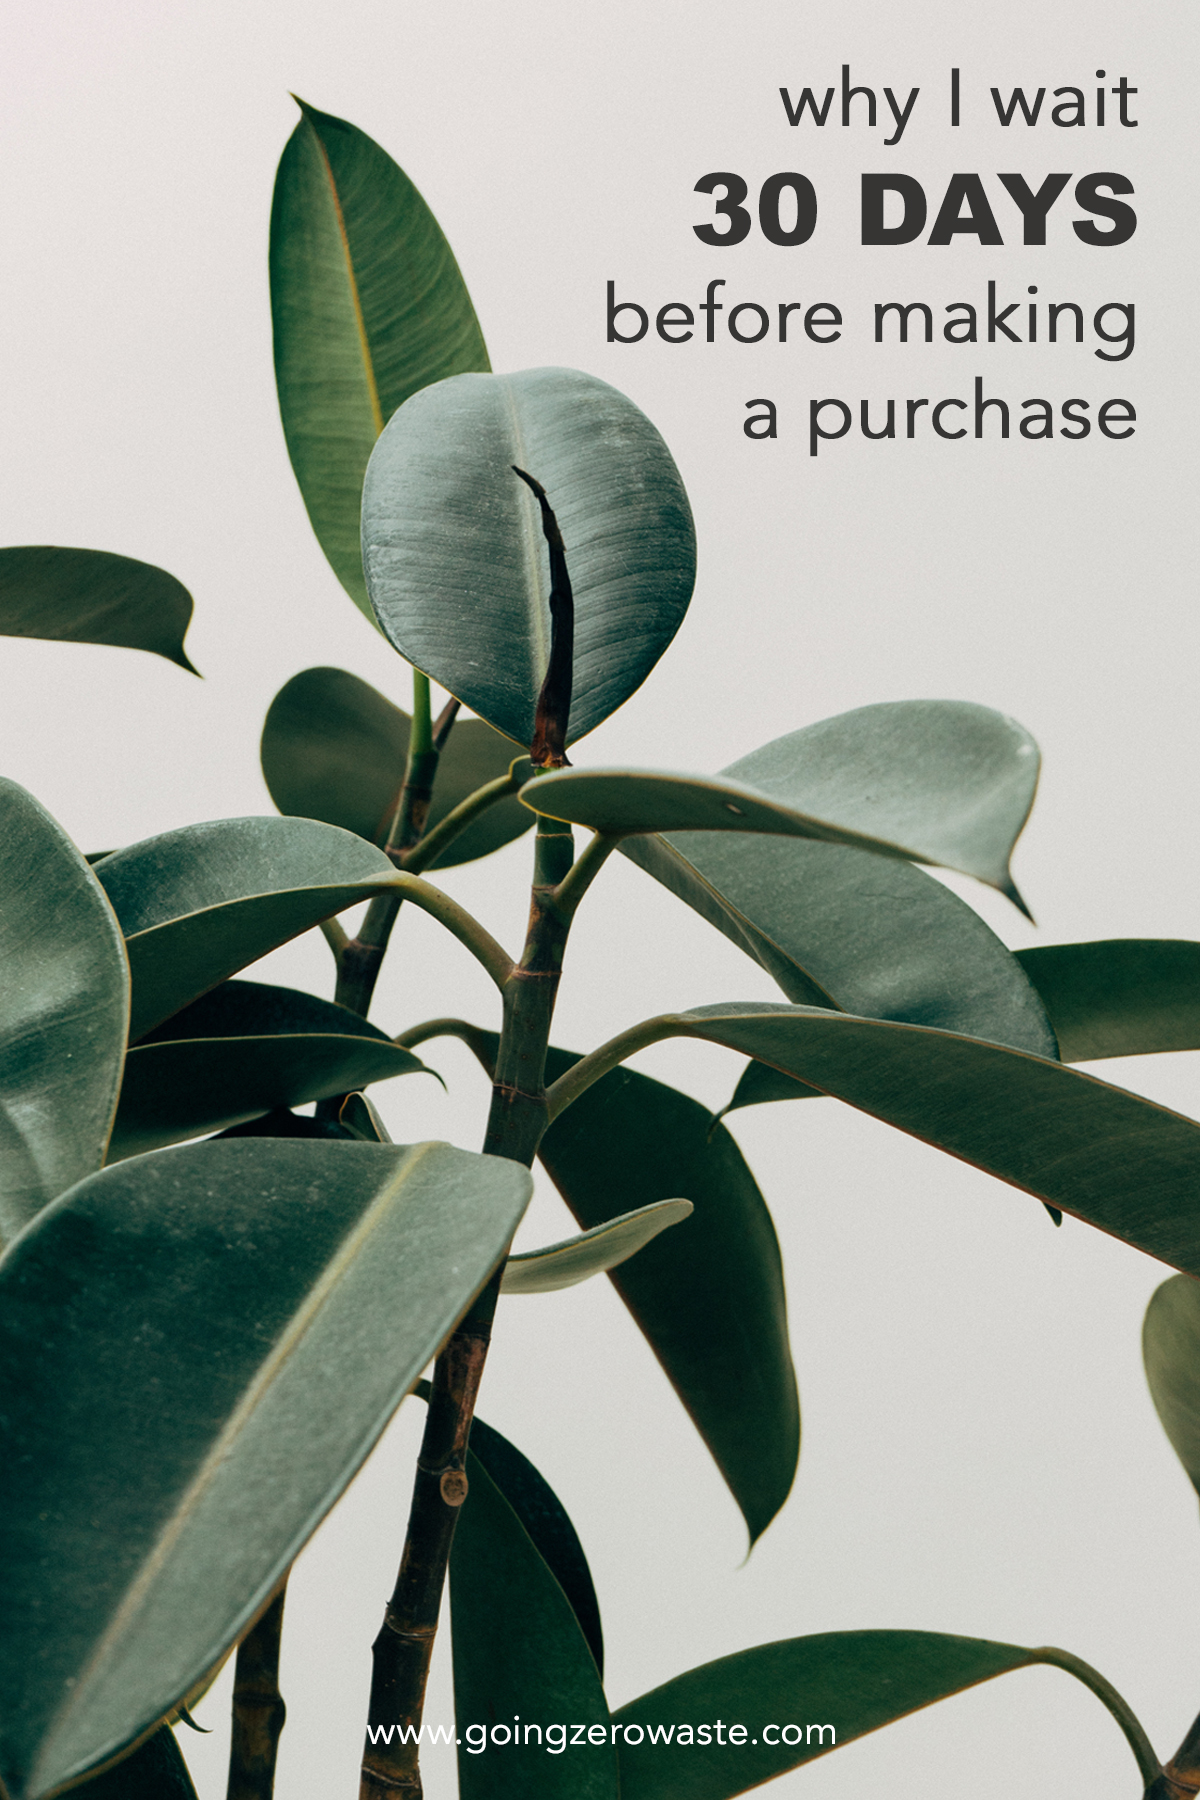 Why I wait 30 days before I make a purchase and you should to from www.goingzerowaste.com